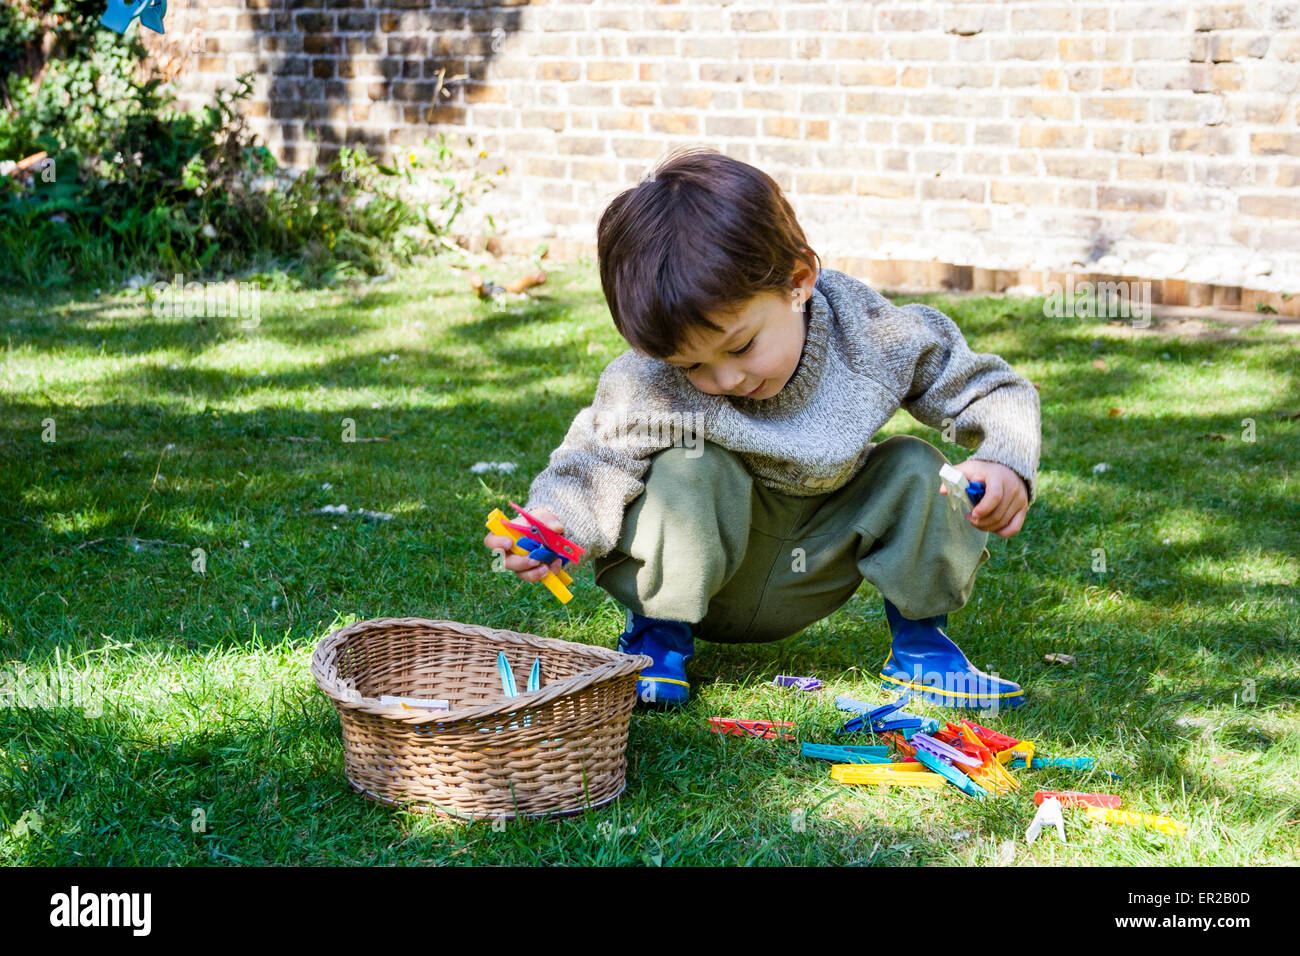 3 - 5 year old Caucasian child, boy. Crouching down outside in garden, putting clothes pegs into basket - Stock Image